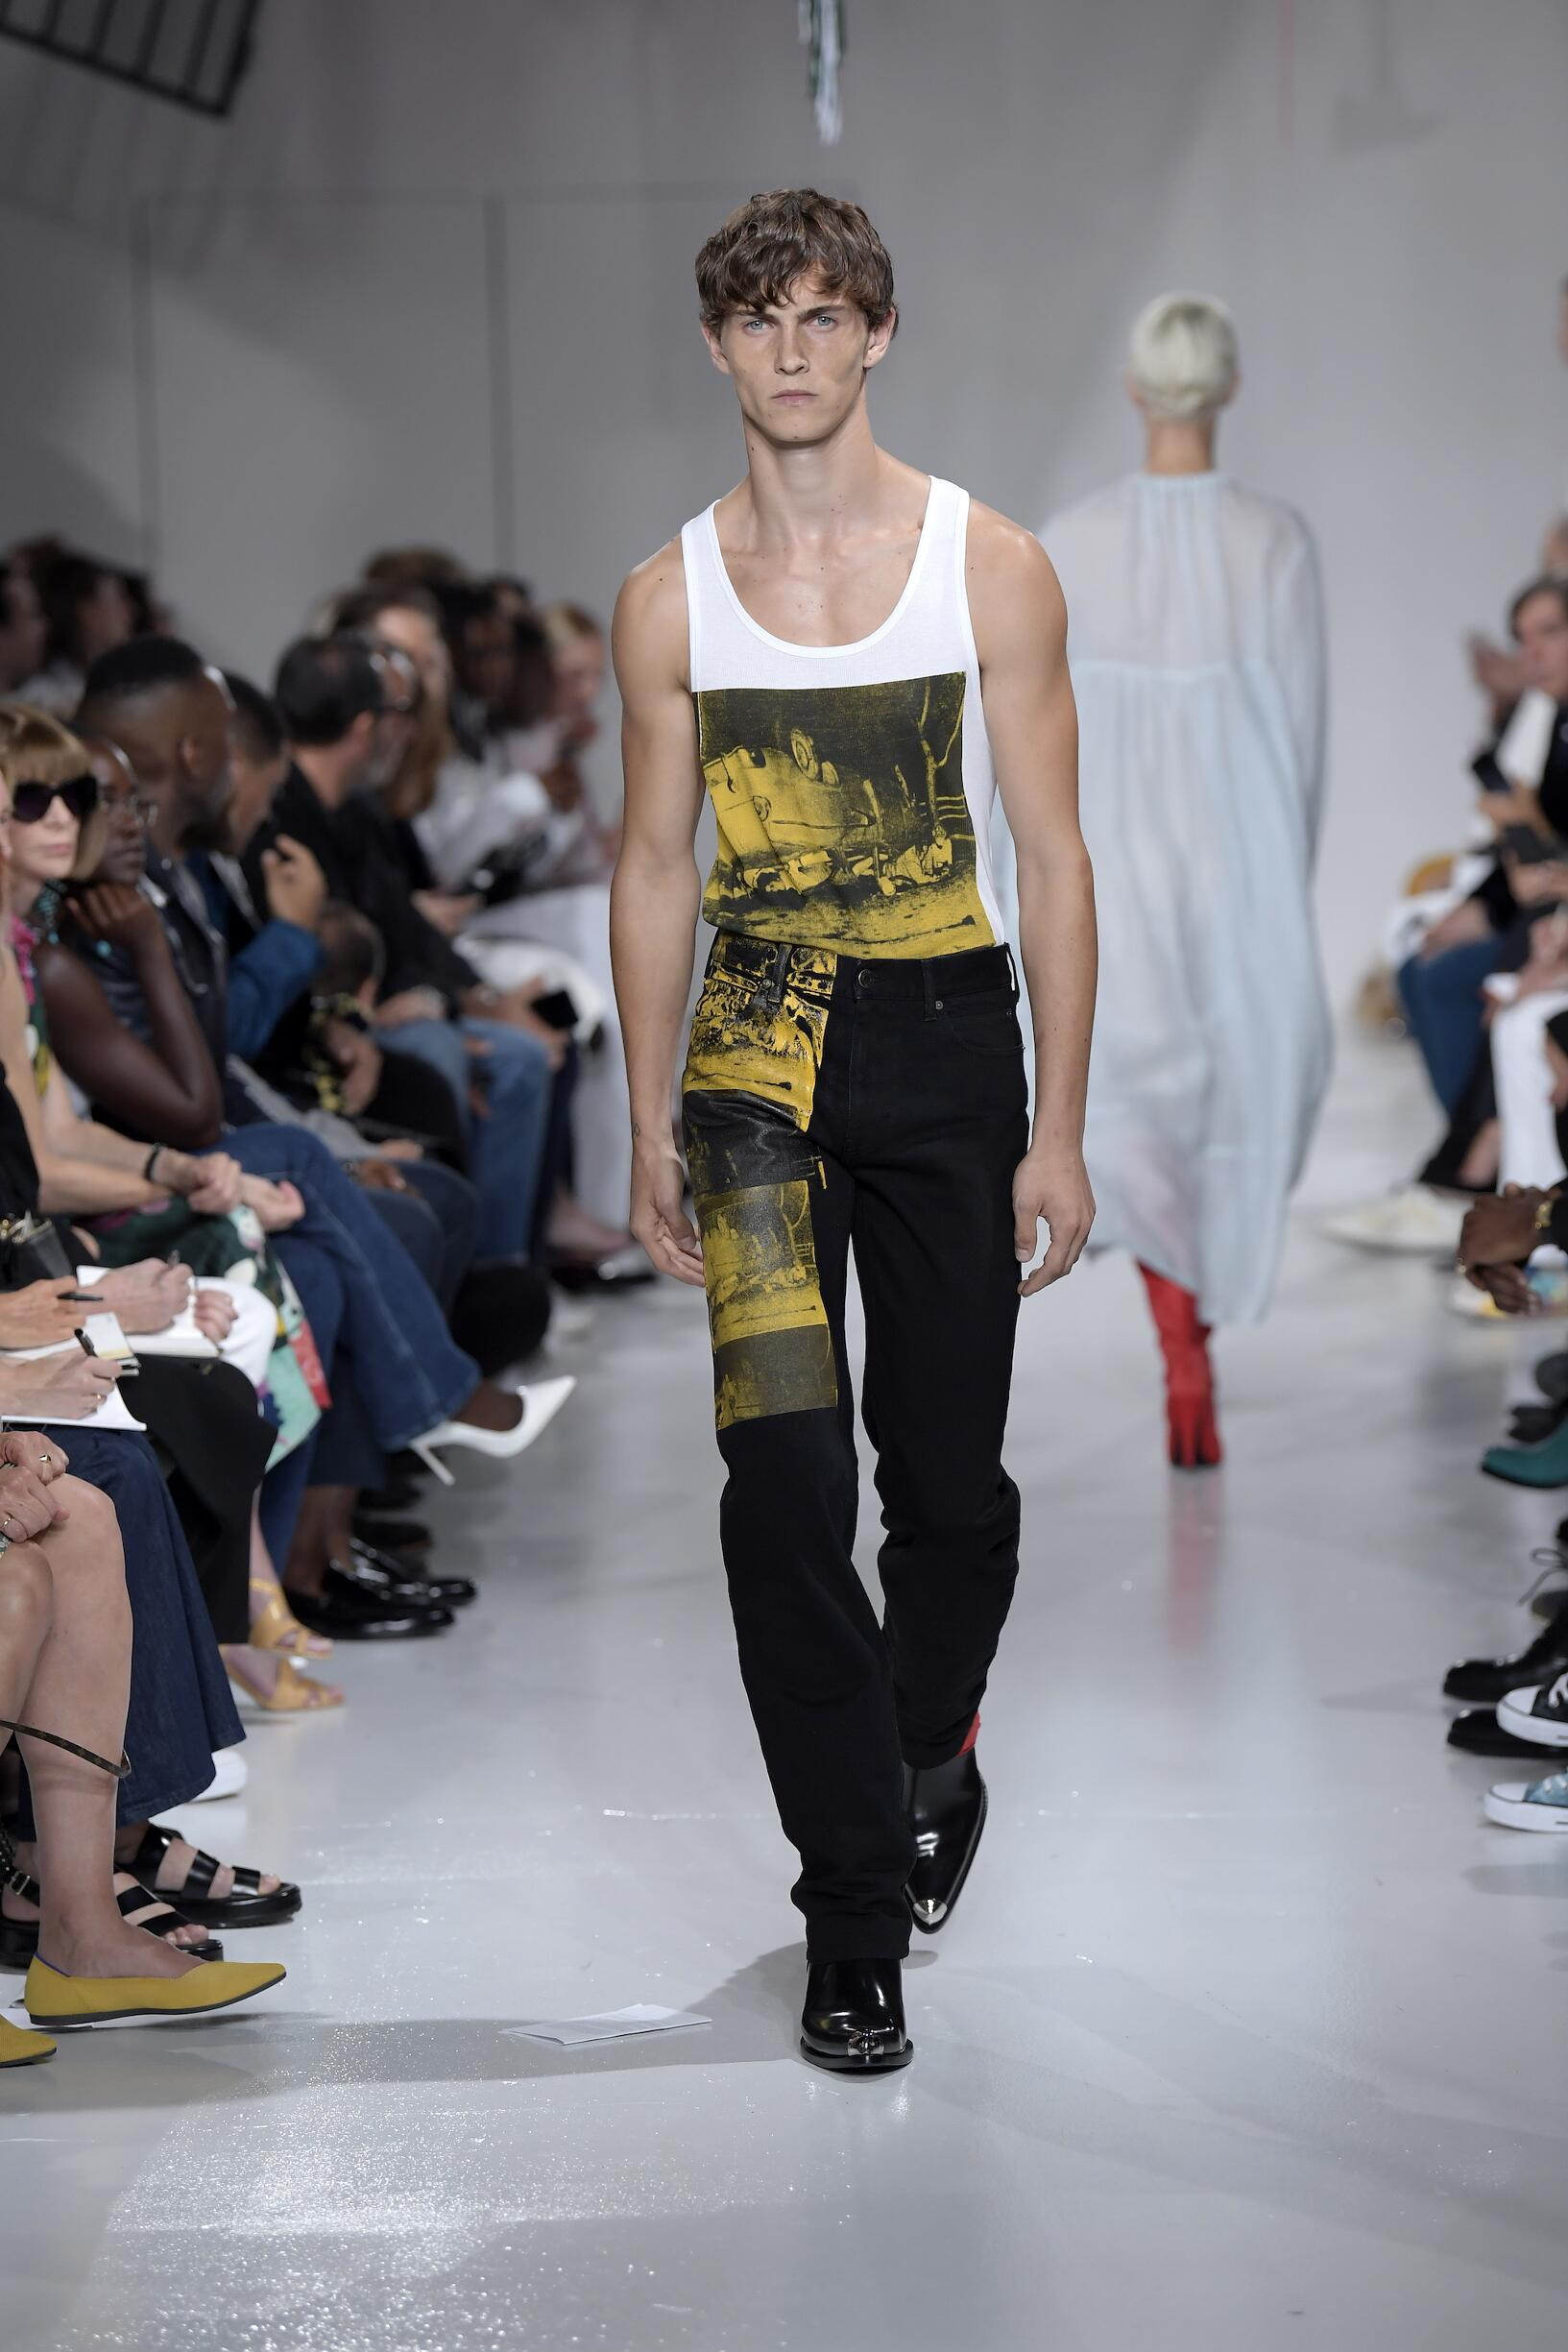 CALVIN KLEIN 205W39NYC SPRING 2018 COLLECTION - NEW YORK